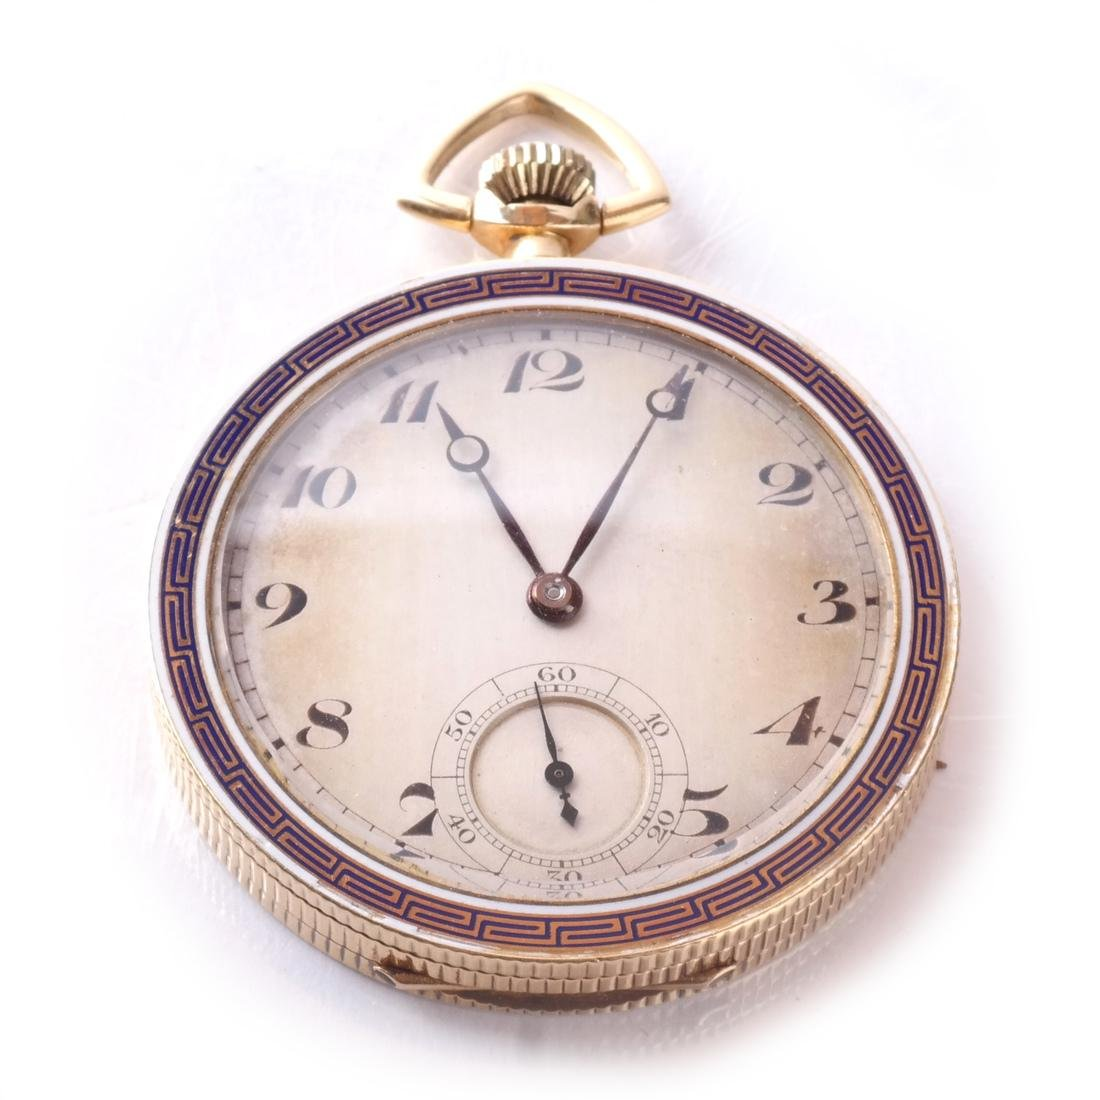 18k Pocket Watch, Open-Face - 2